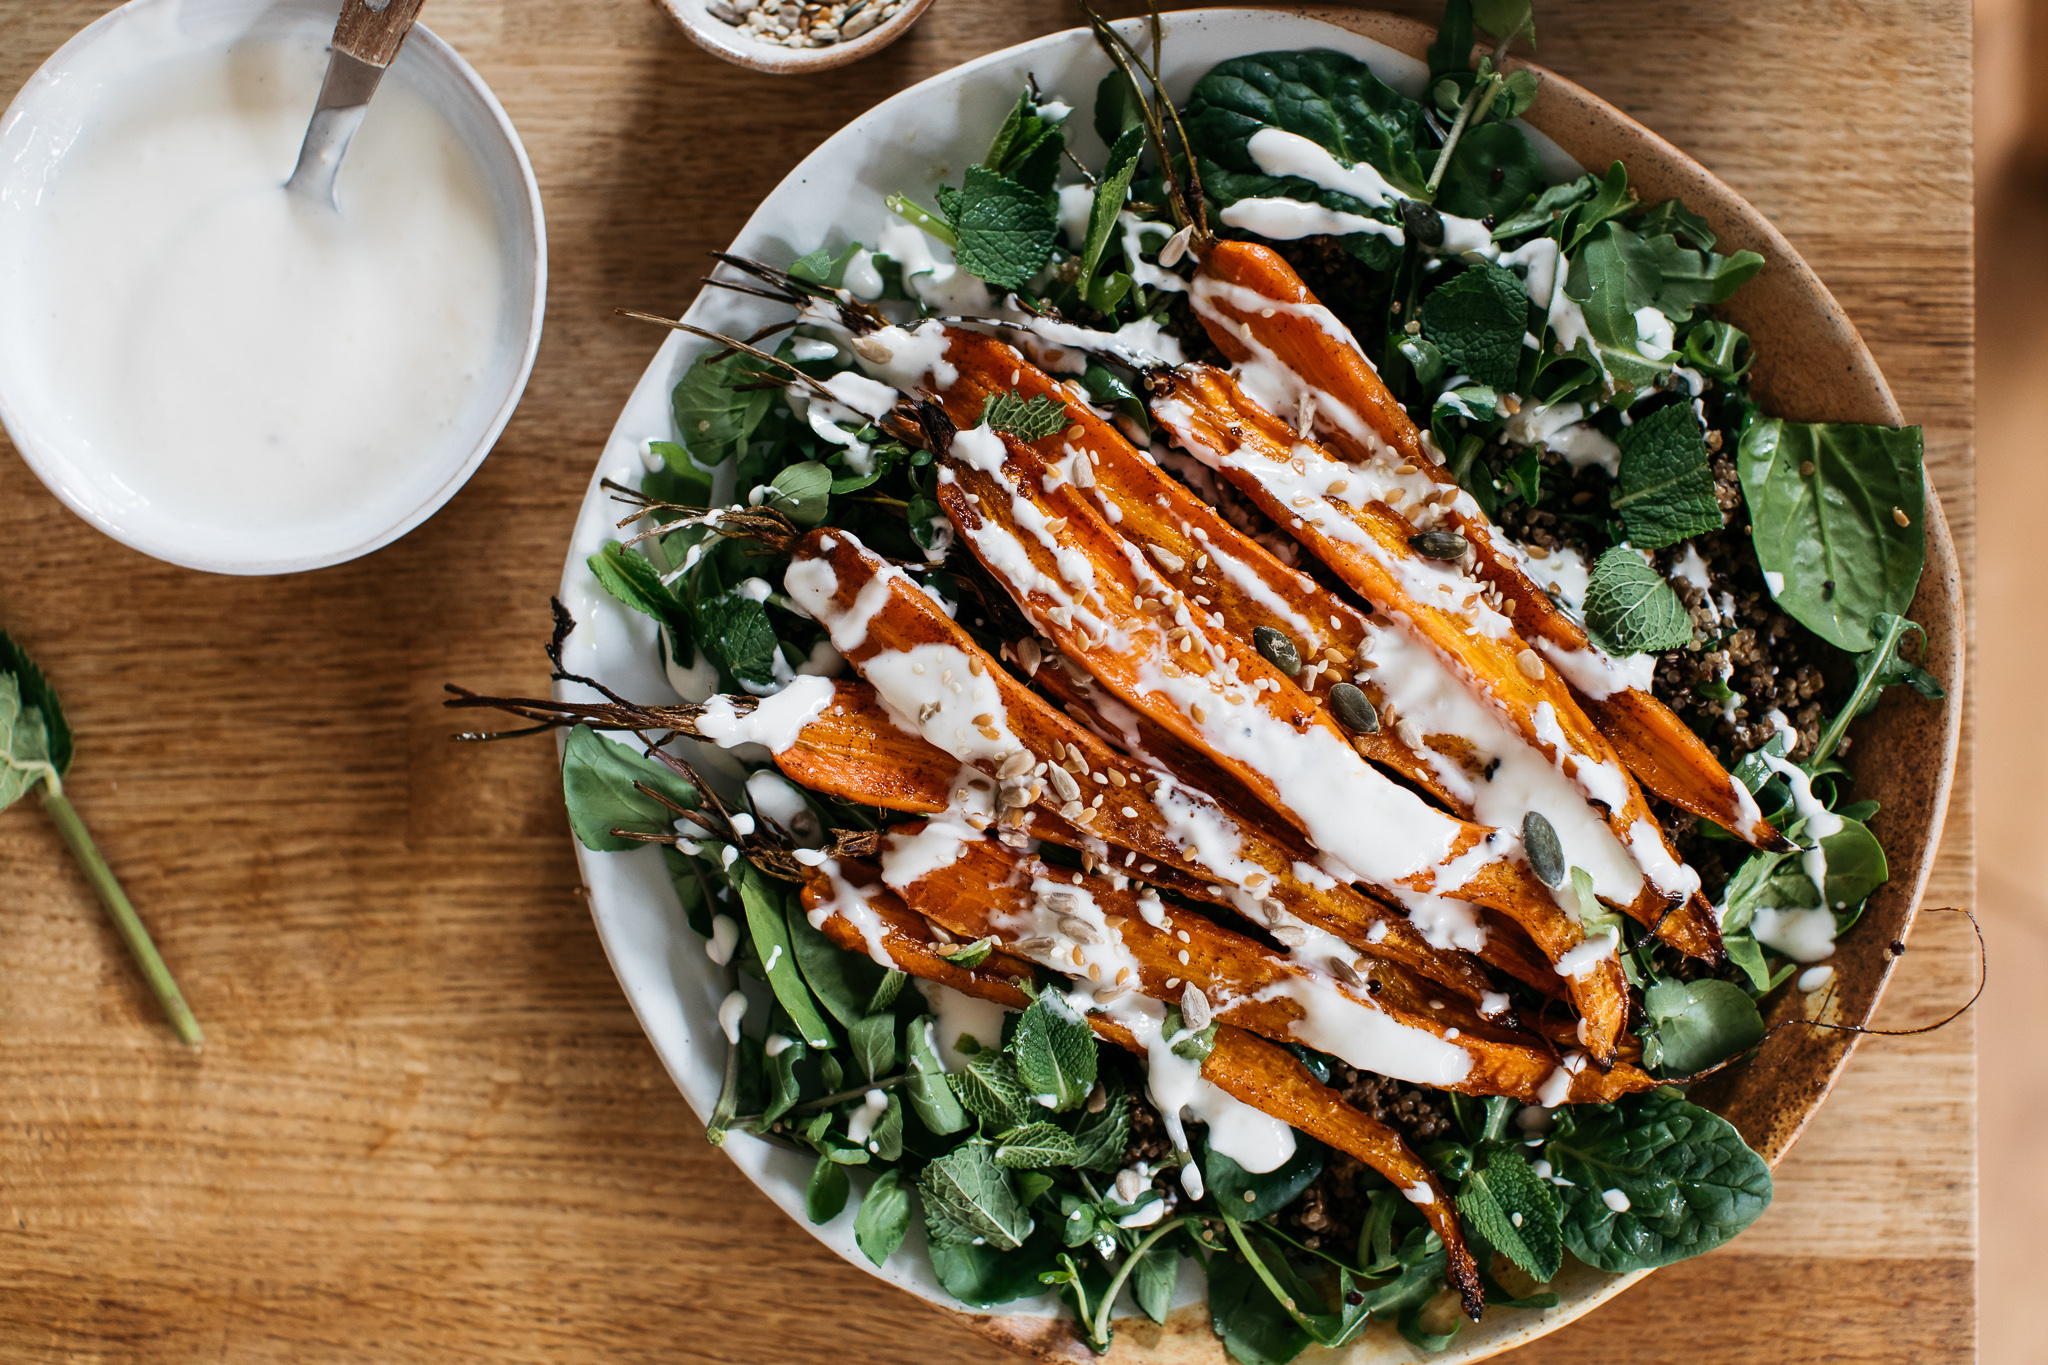 Low FODMAP roasted carrot salad